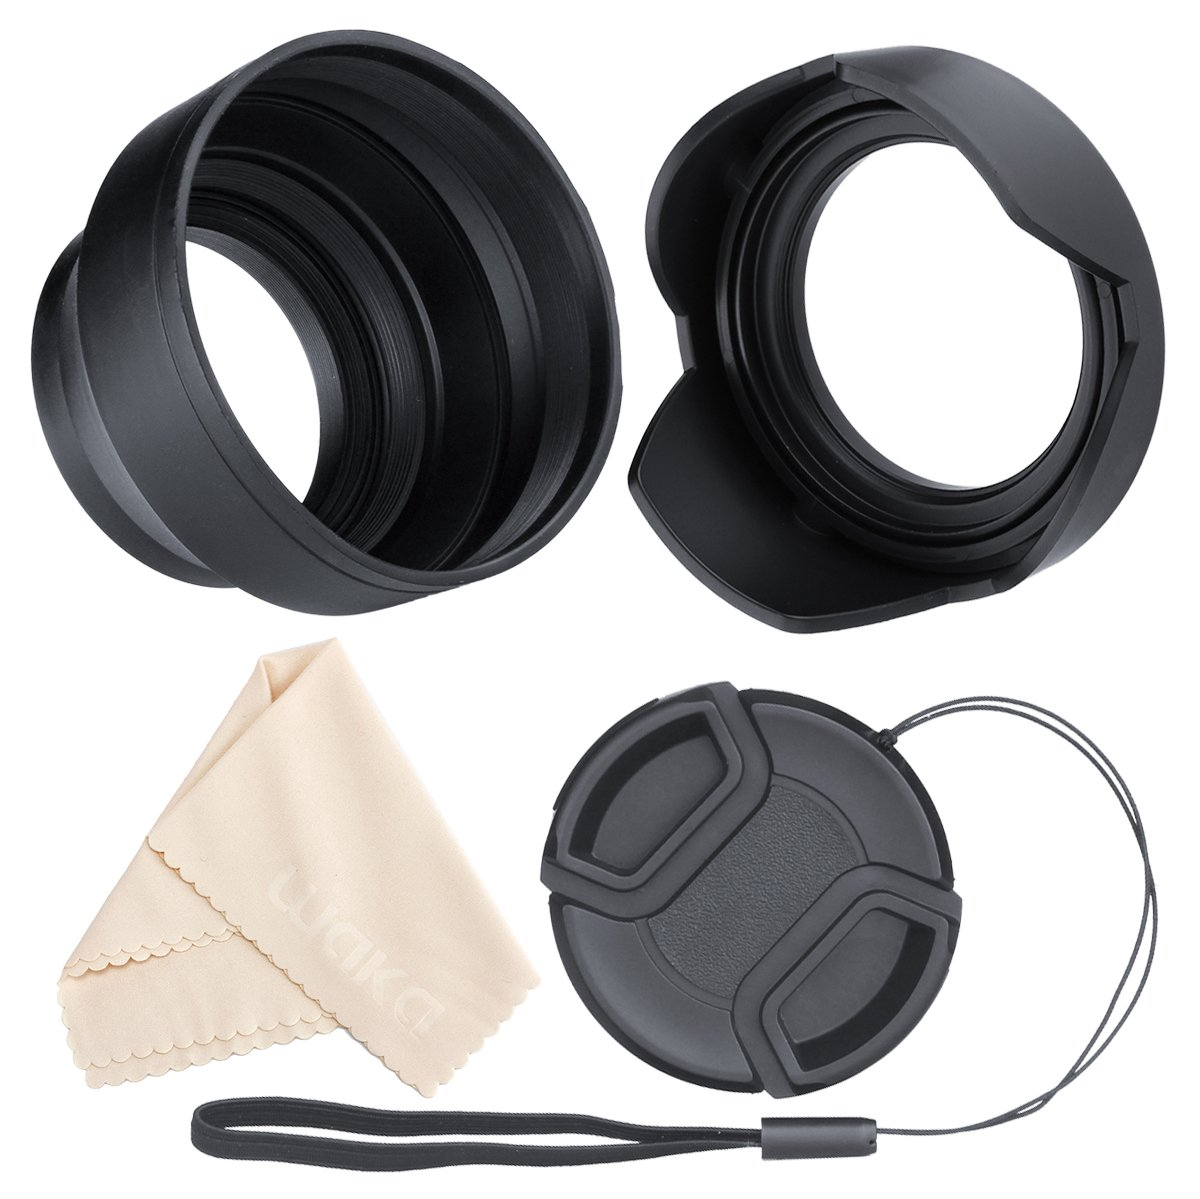 waka Lens Hood, 55mm Camera Lens Hood Set, Reversible Tulip Flower + 3 Stages Collapsible Rubber Lens Hood + Center Pinch Lens Cap with Cap Keeper Leash + Microfiber Cleaning Cloth by waka